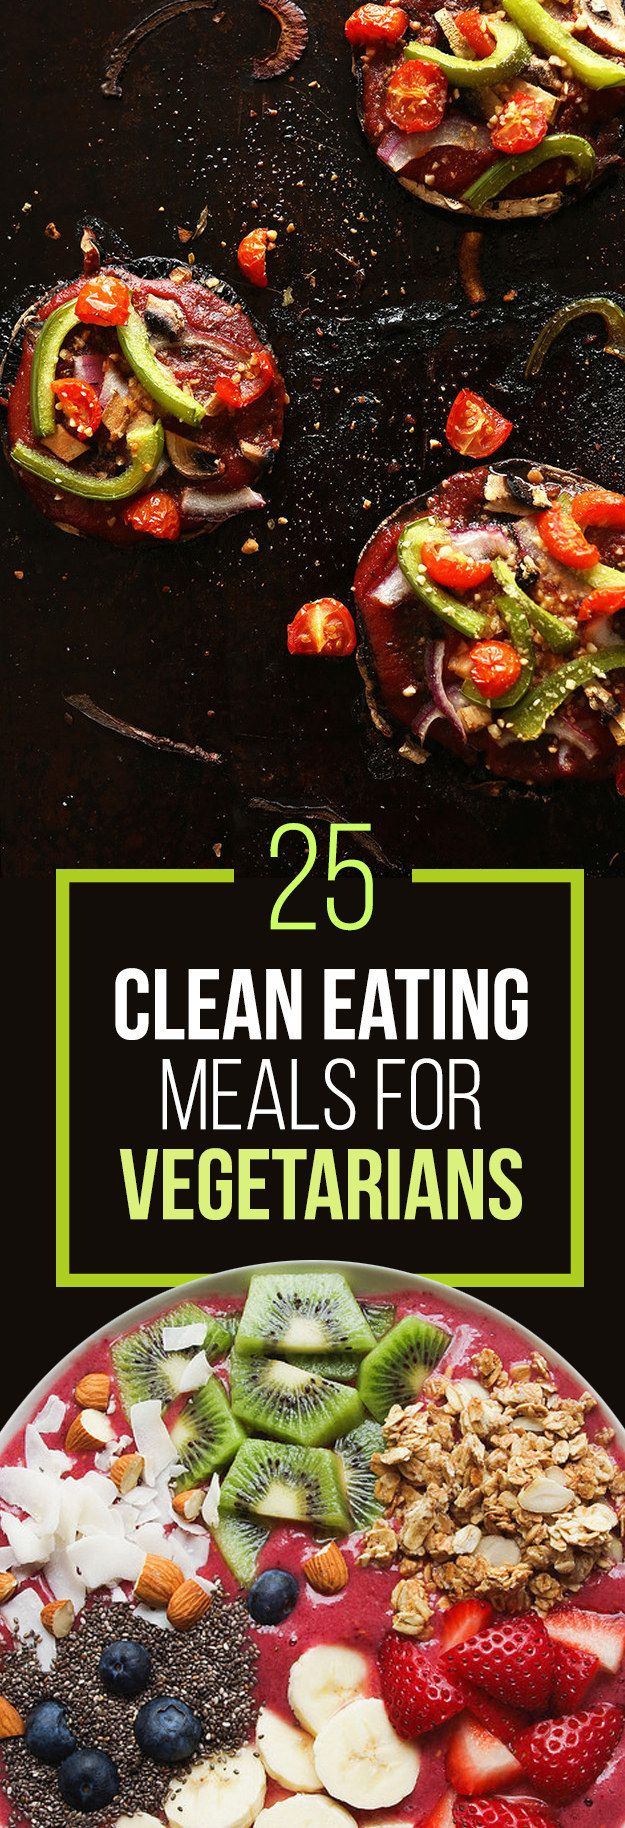 25 Meat-Free Clean Eating Recipes That Are Actually Delicious